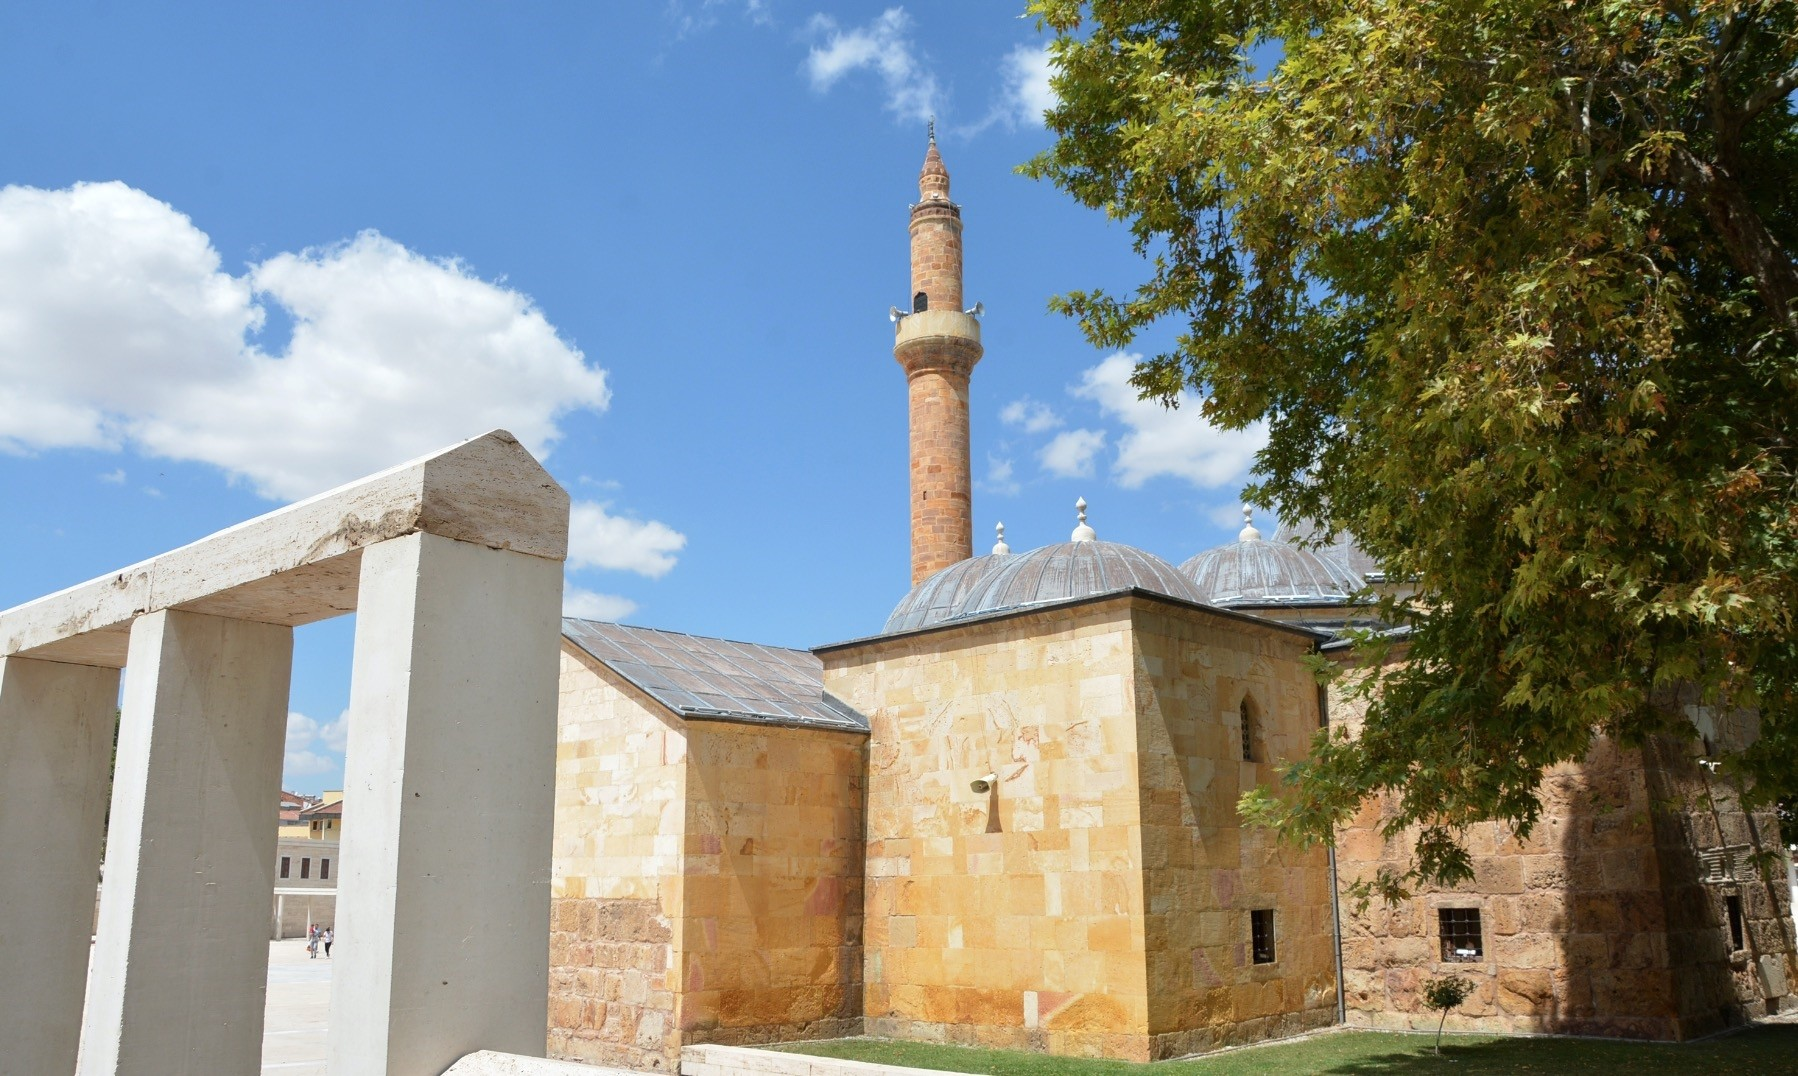 Founded by Evran-u0131 Veli in the 1300s, the Dervish Lodge, which served as a soup kitchen, a spot for dervish rituals, a religious retreat and a space for Islamic mysticism, serves as the Evran-u0131 Veli Mosque and Shrine today.